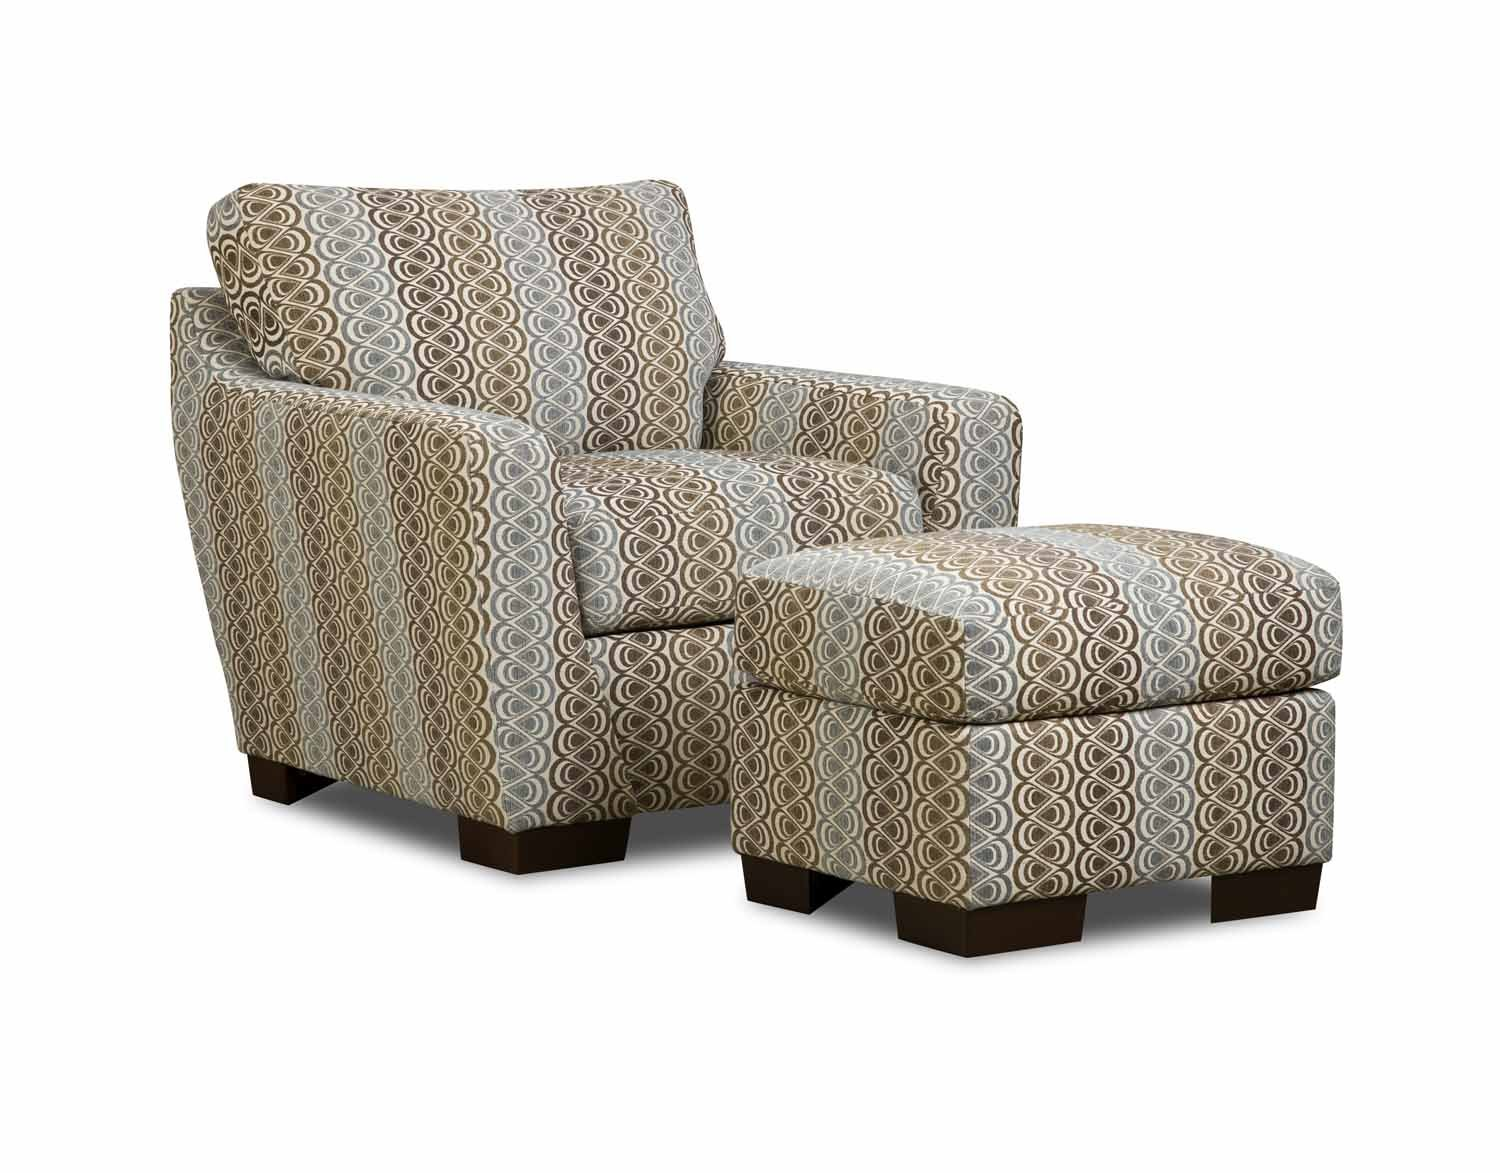 accent chair with ottoman brown and gray patterned accent chair with ottoman